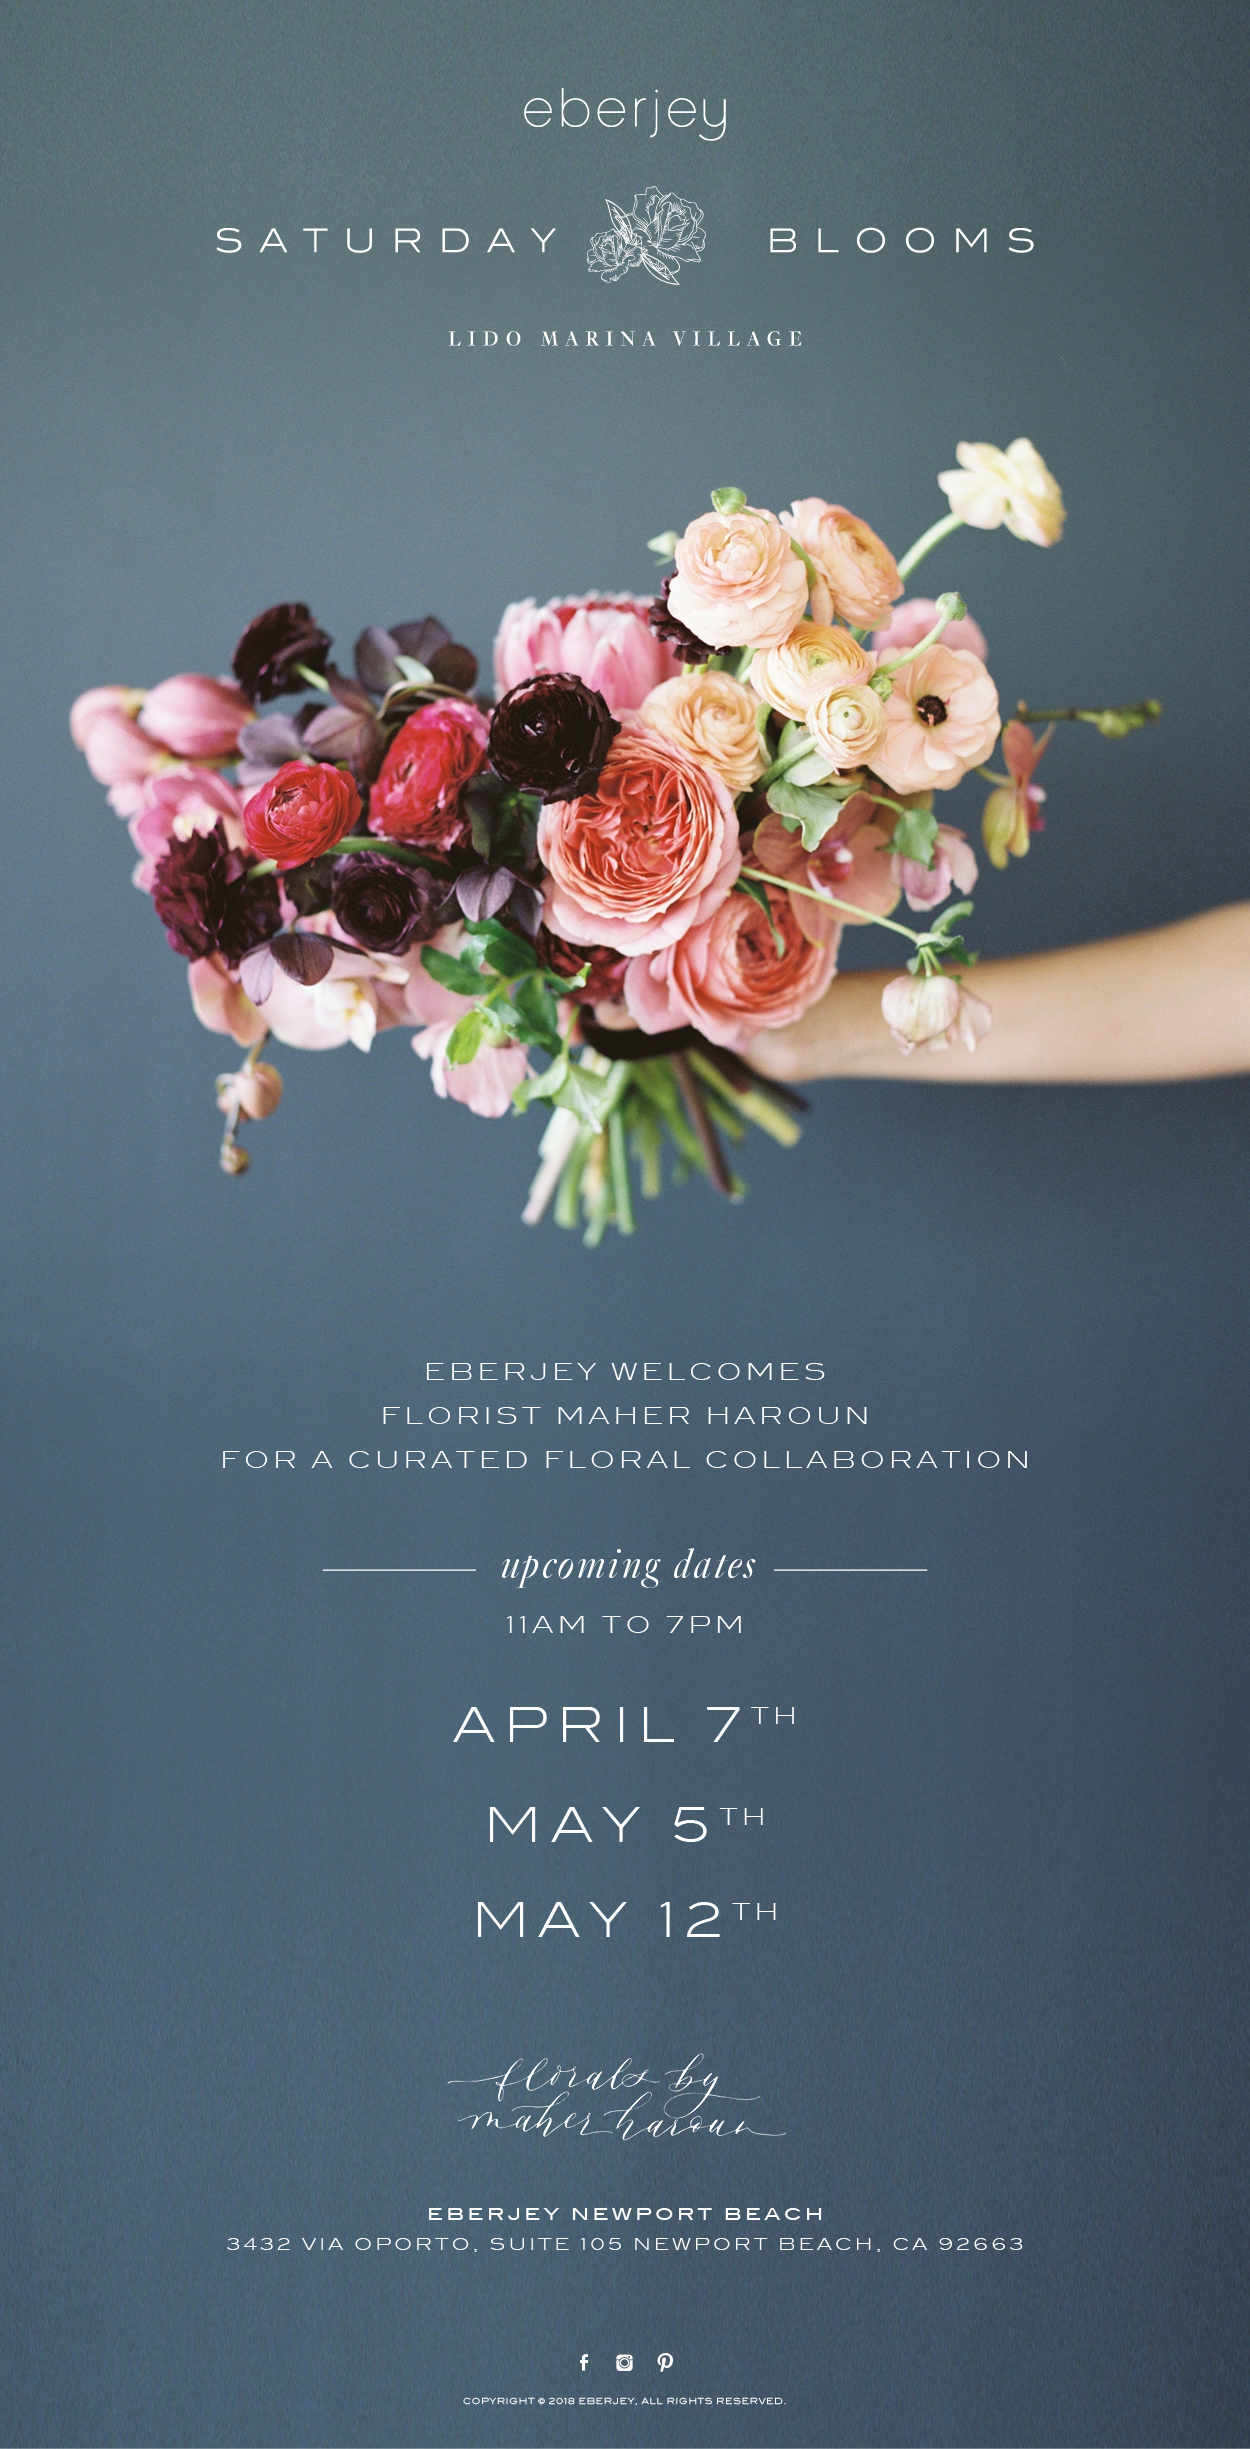 Saturday Blooms at Eberjey Newport Beach.jpg